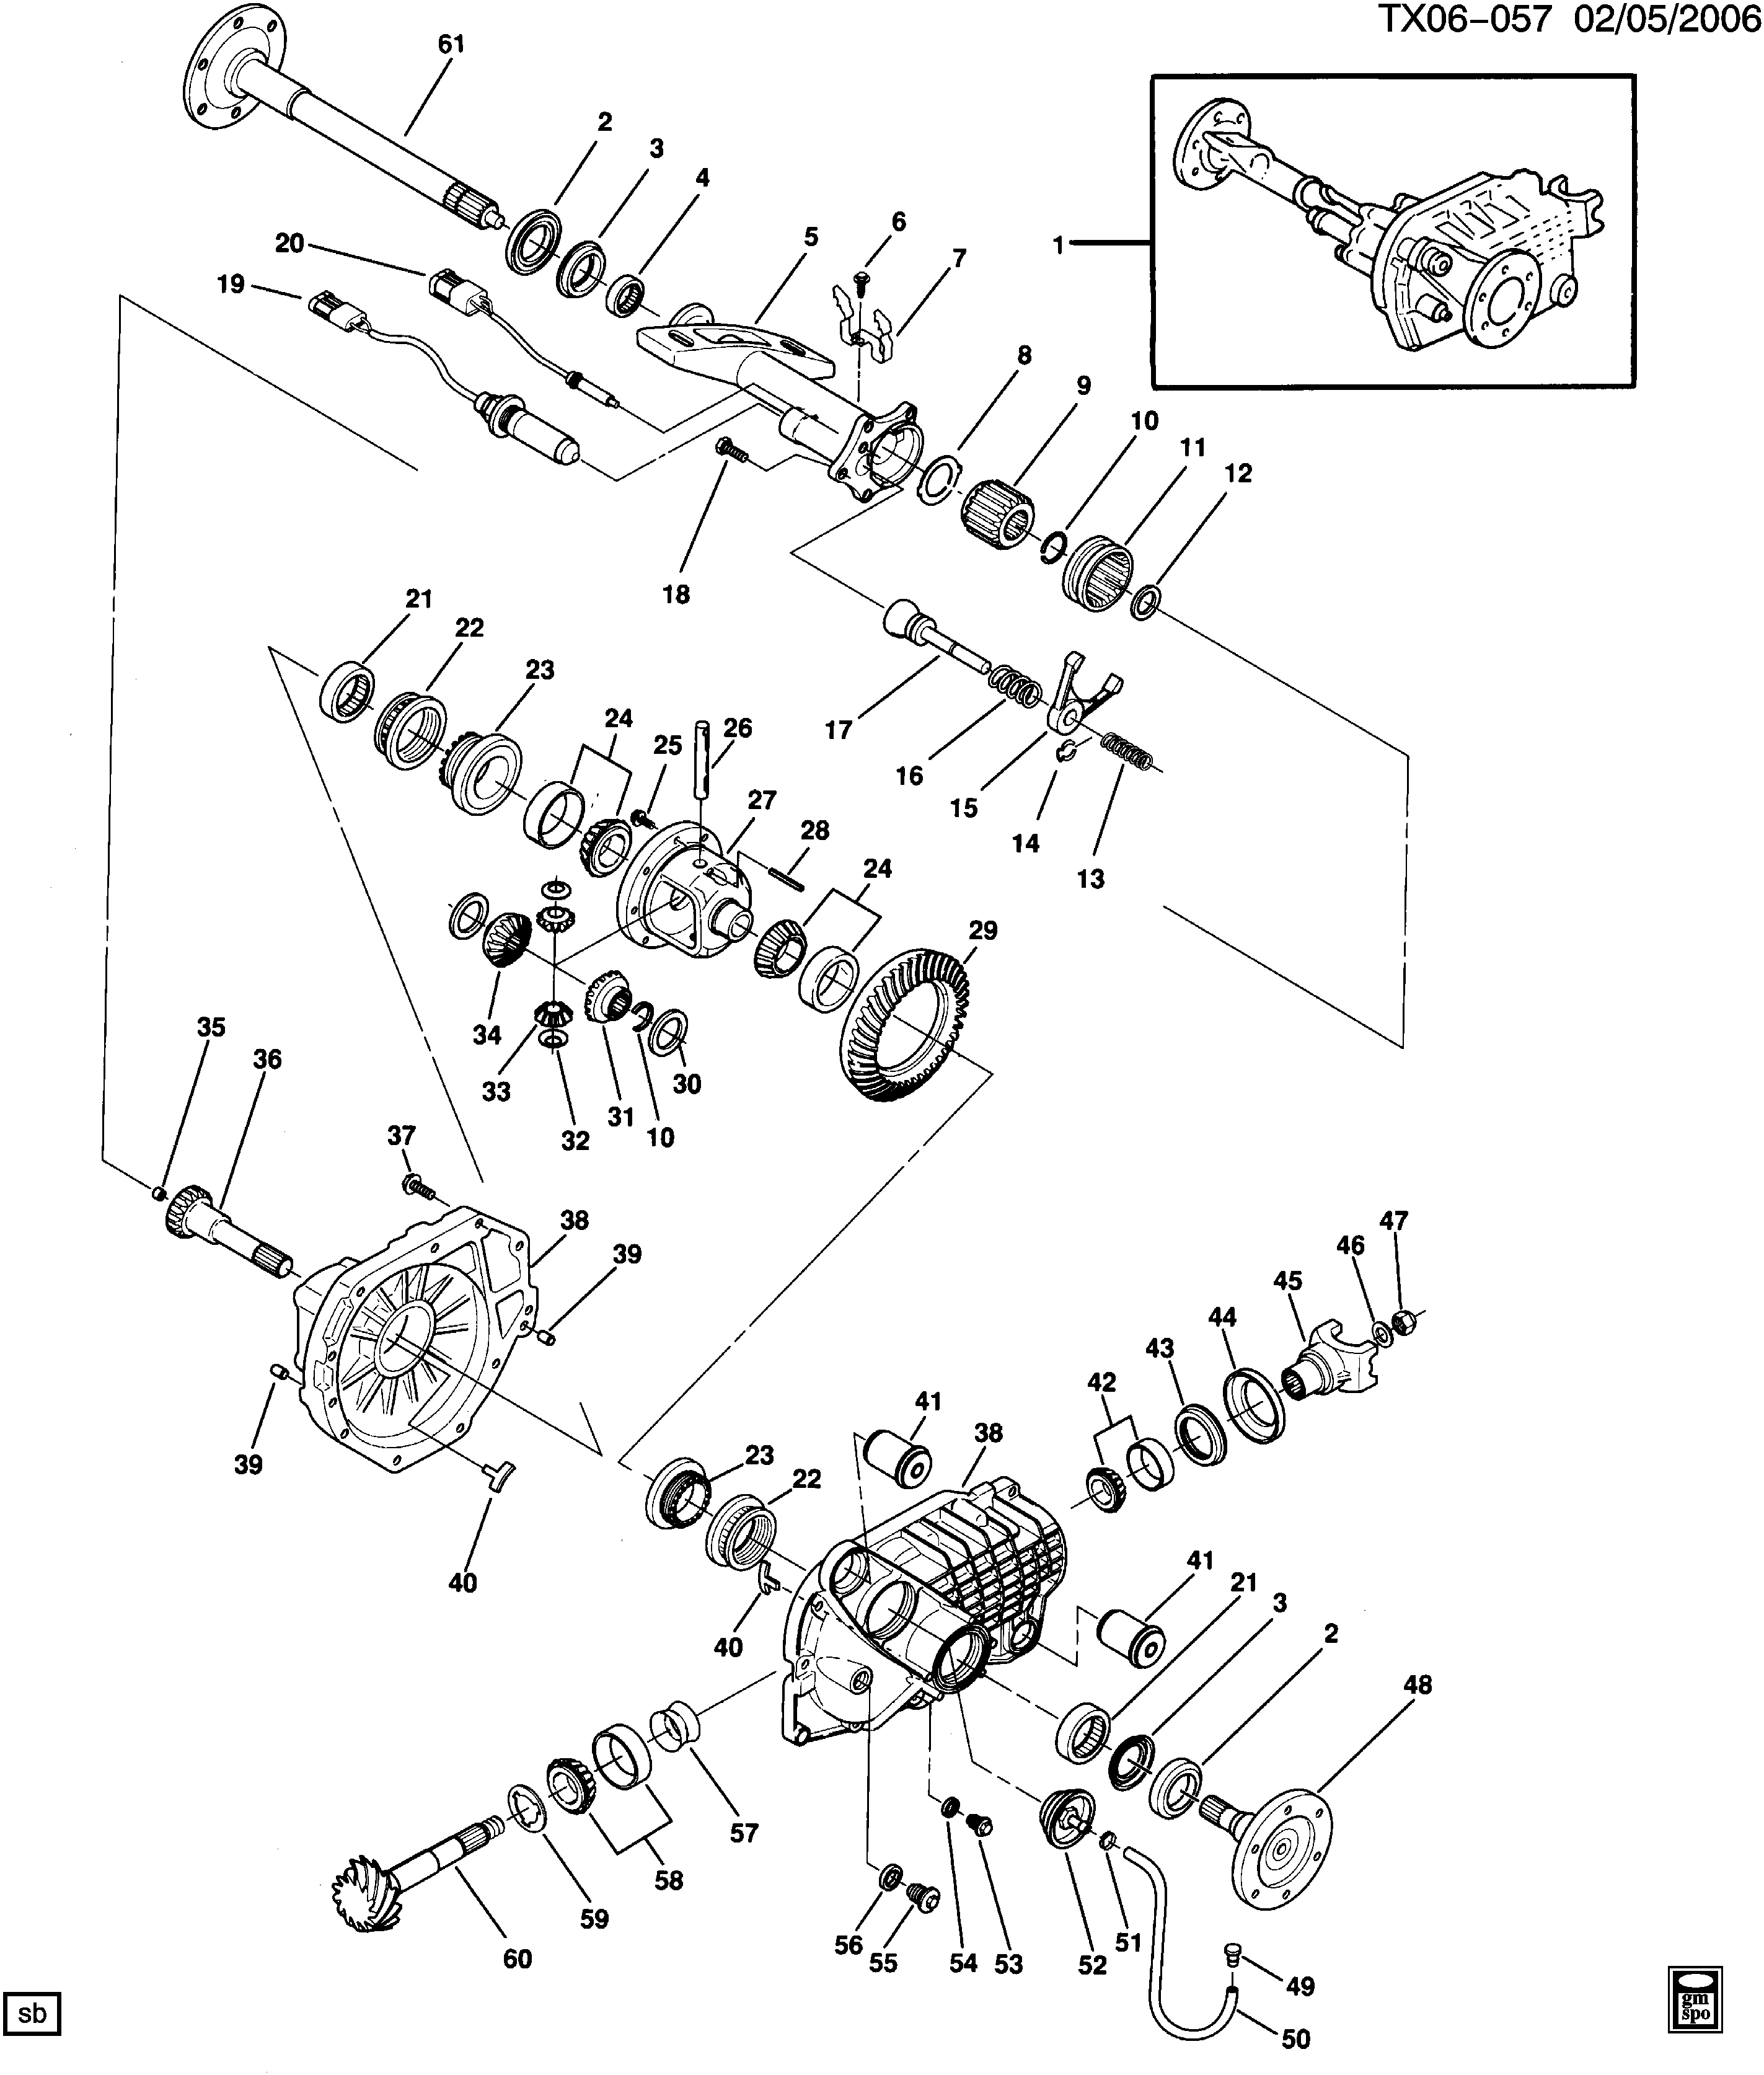 Chevy Blazer Parts Diagram